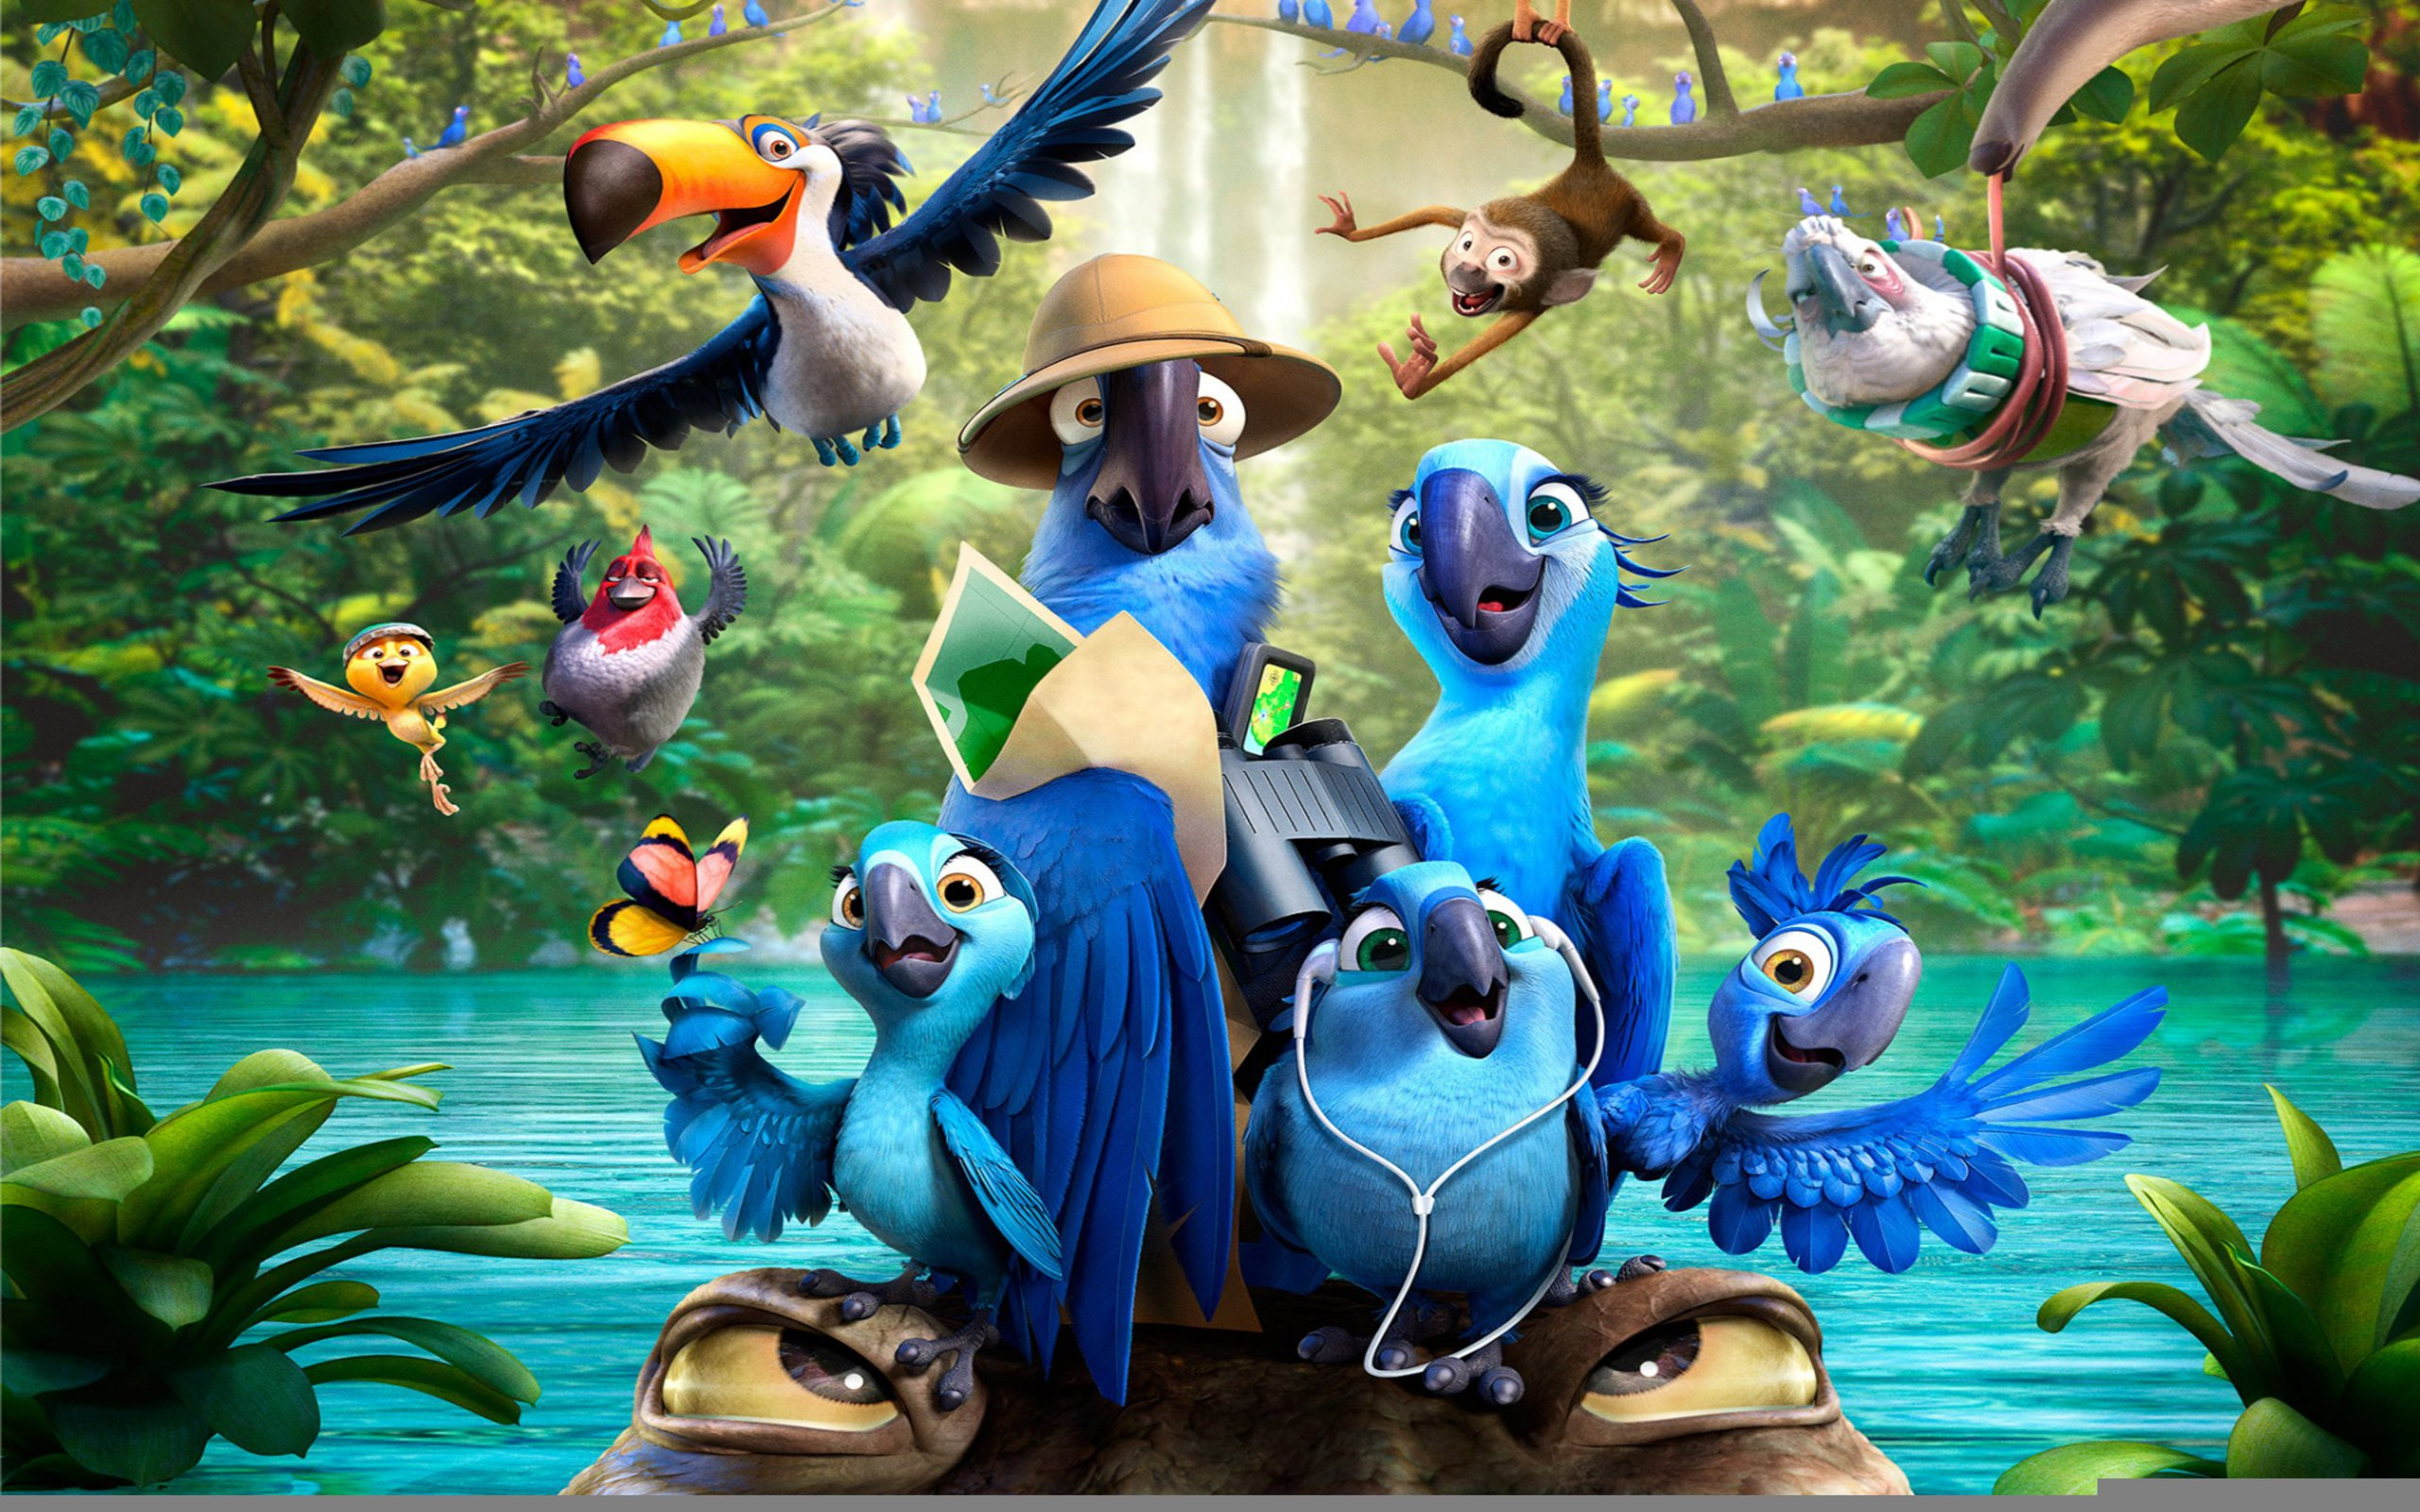 DOWNLOAD: rio 2 movie free background 2560 x 1600